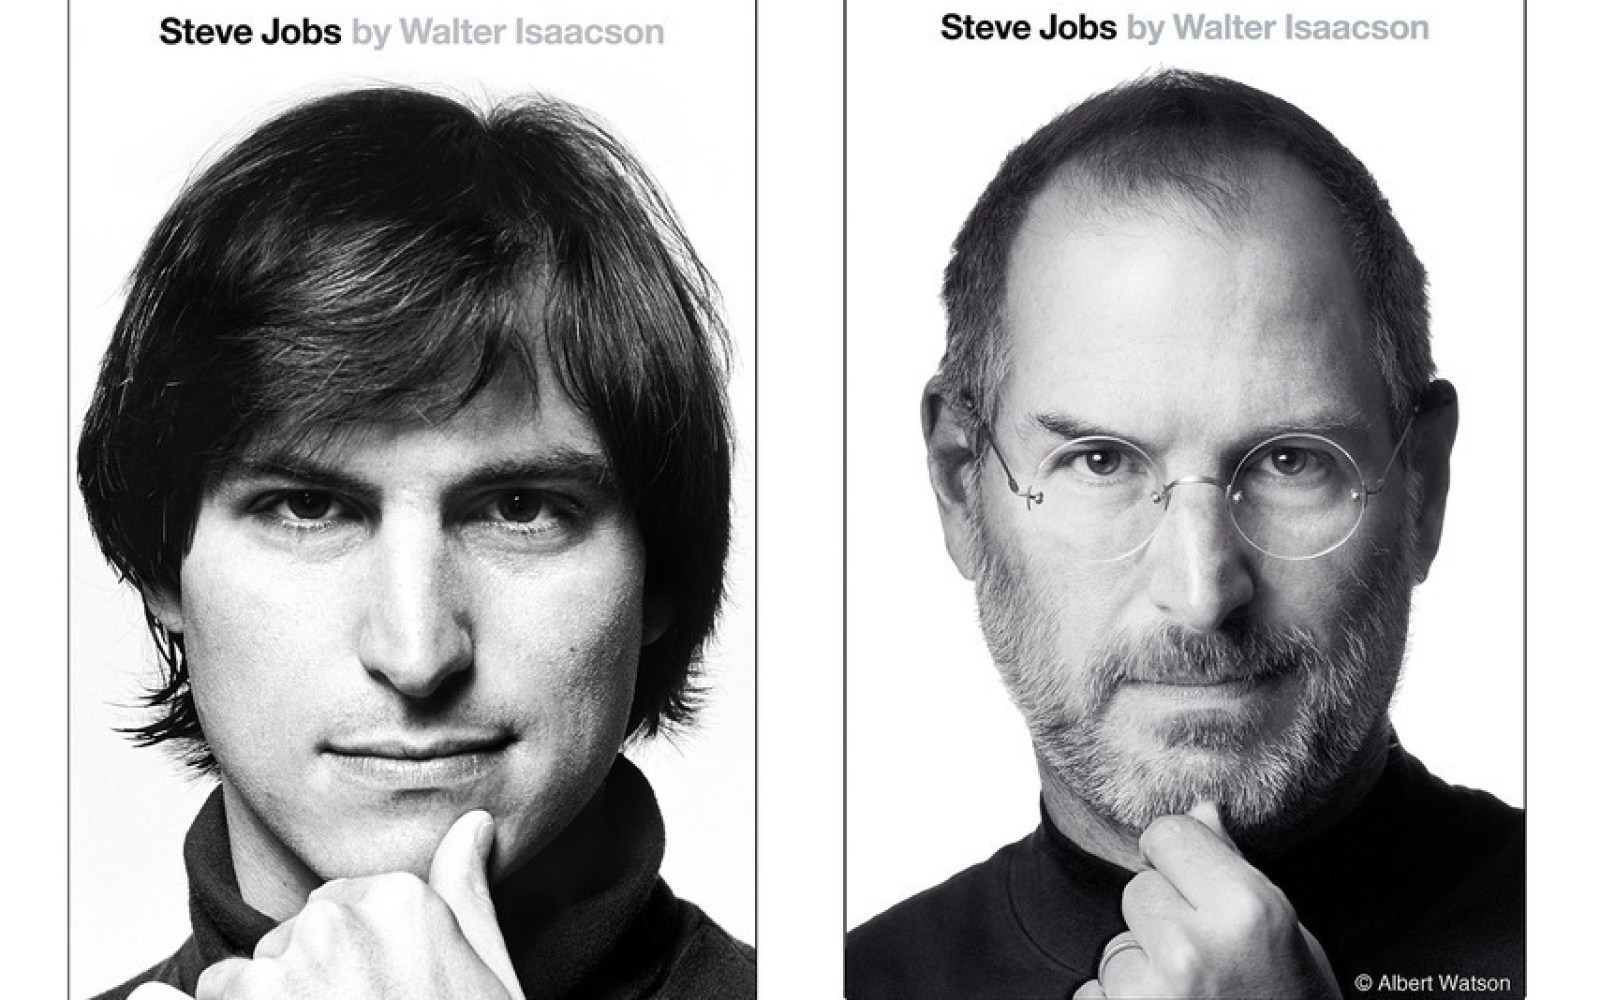 Paperback edition of Steve Jobs bio out on September 10th – with younger Steve on the cover